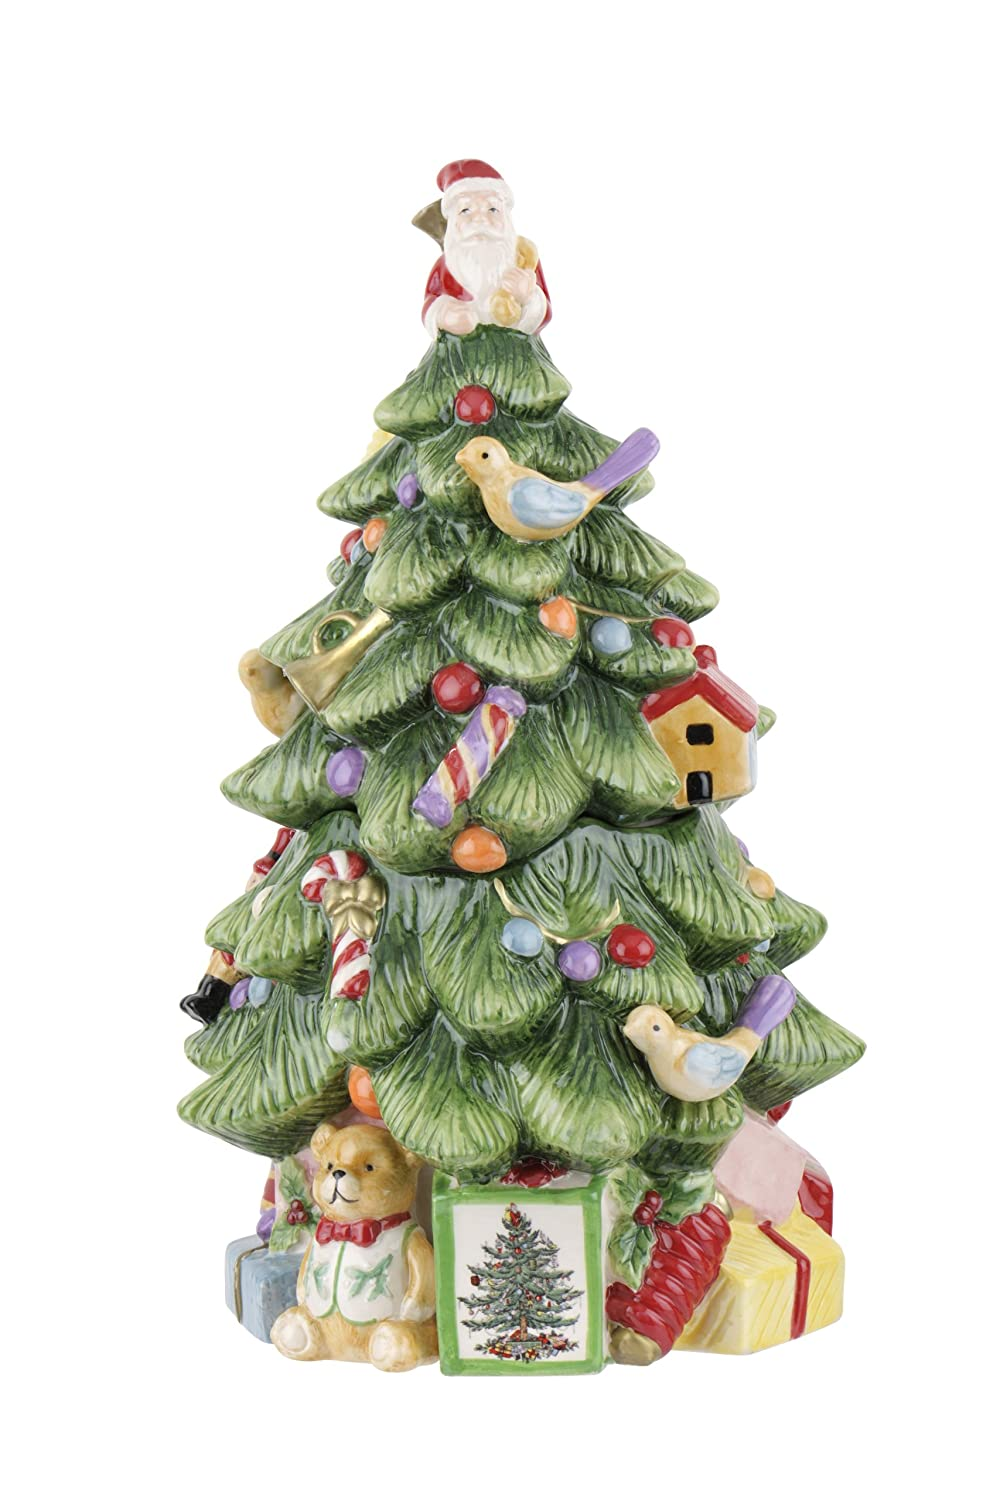 Spode Christmas Tree Sculpted Christmas Tree Shaped Covered Cookie Jar,  12-Inch: Amazon.co.uk: Kitchen & Home